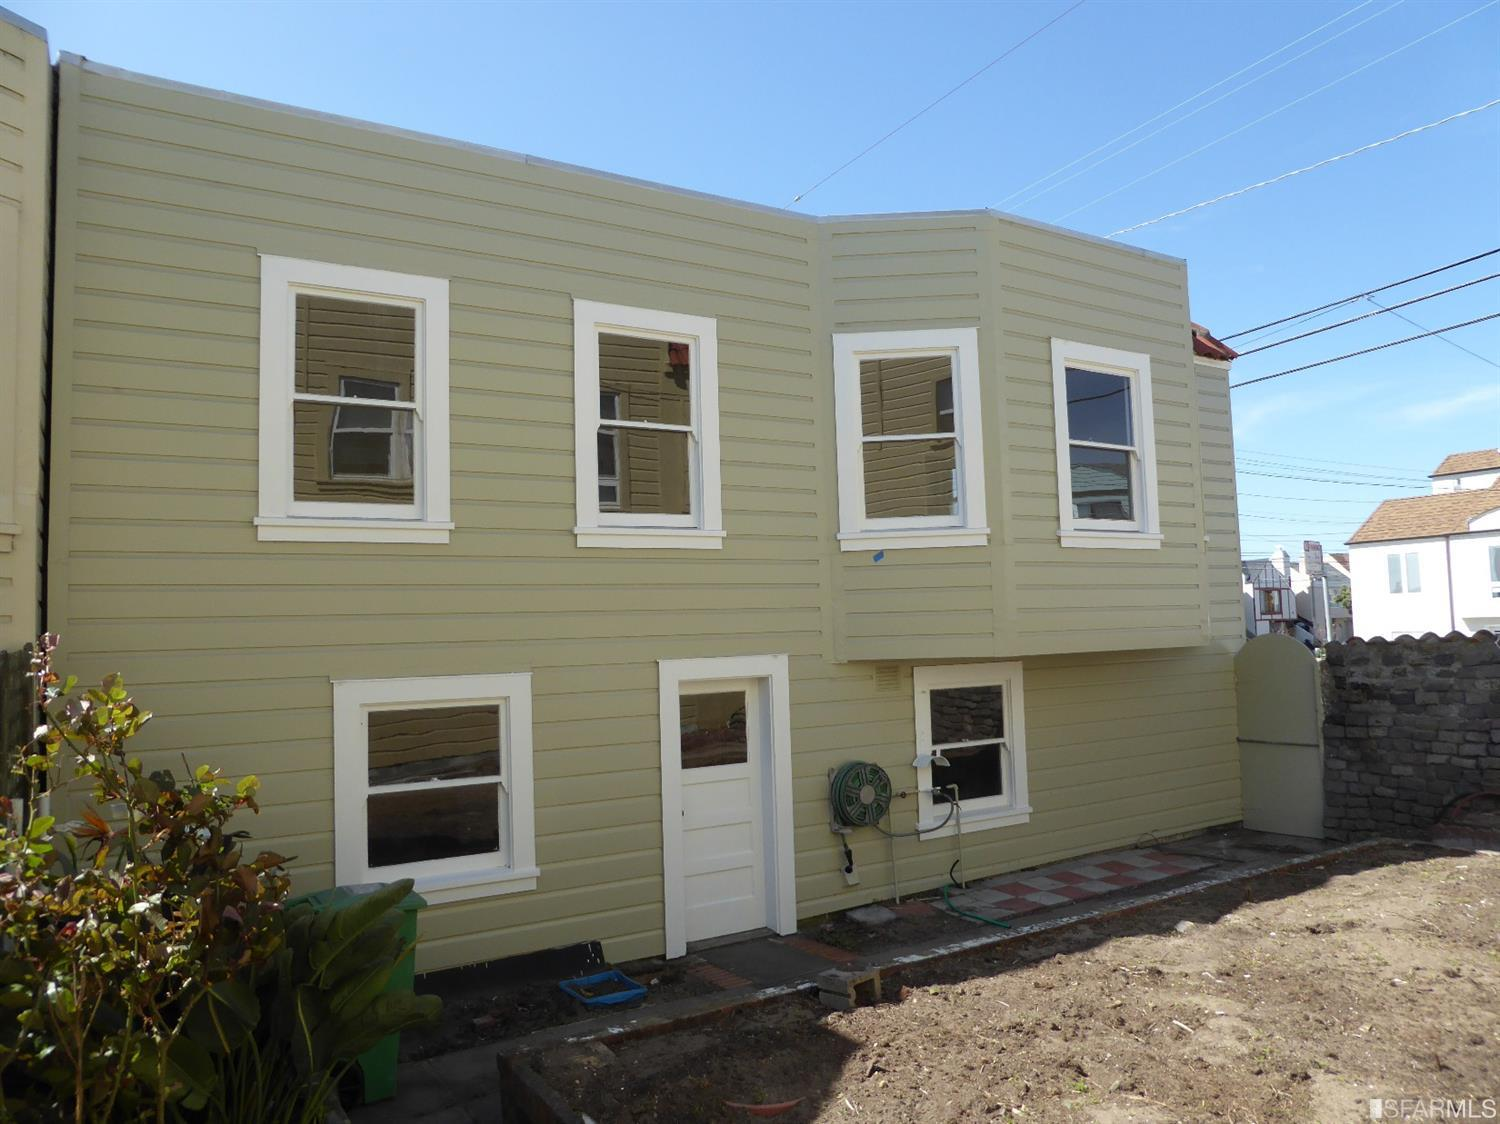 Additional photo for property listing at 2300 34th Avenue  SAN FRANCISCO, CALIFORNIA 94116